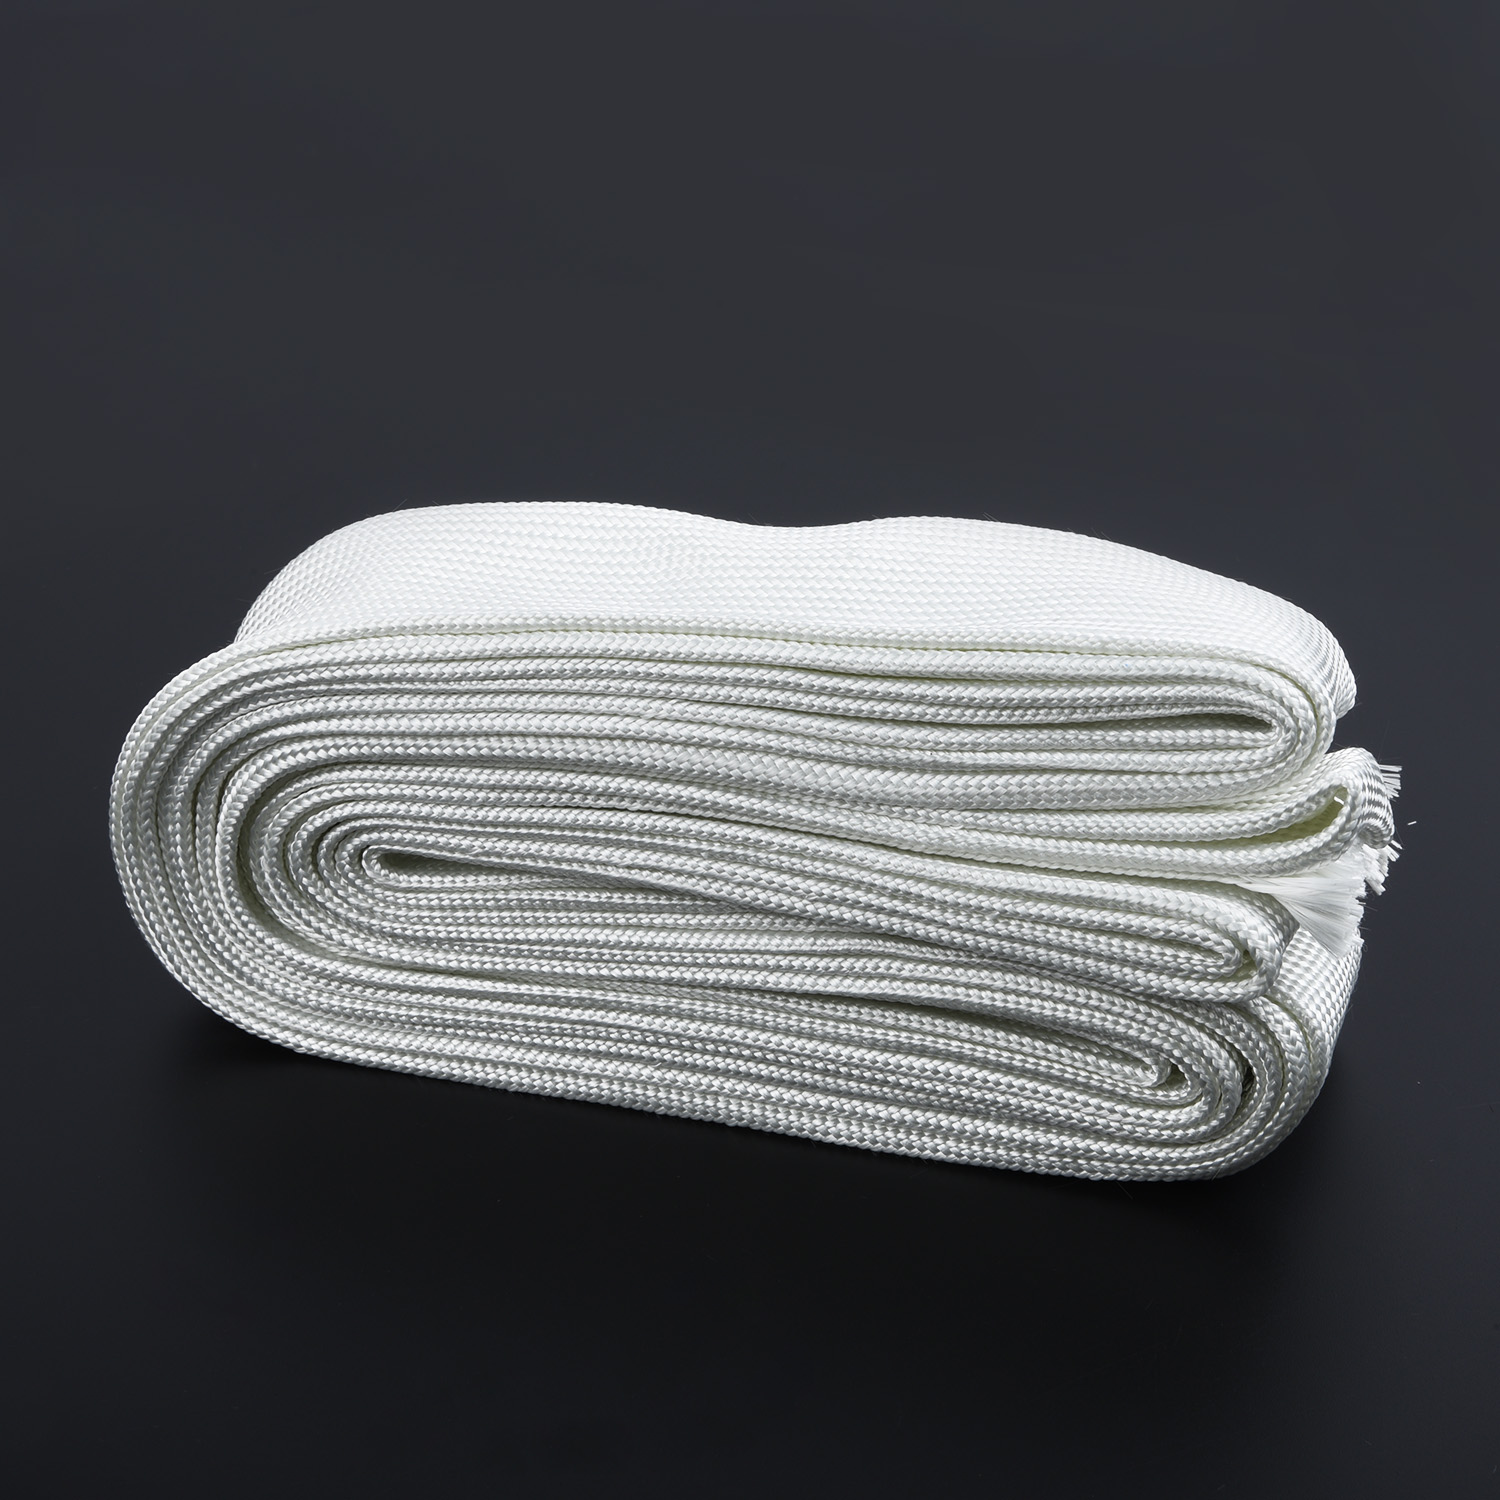 1* Exhaust Glass Fiber Hose Insulation For 22mm & 24mm Exhaust Pipe Webasto